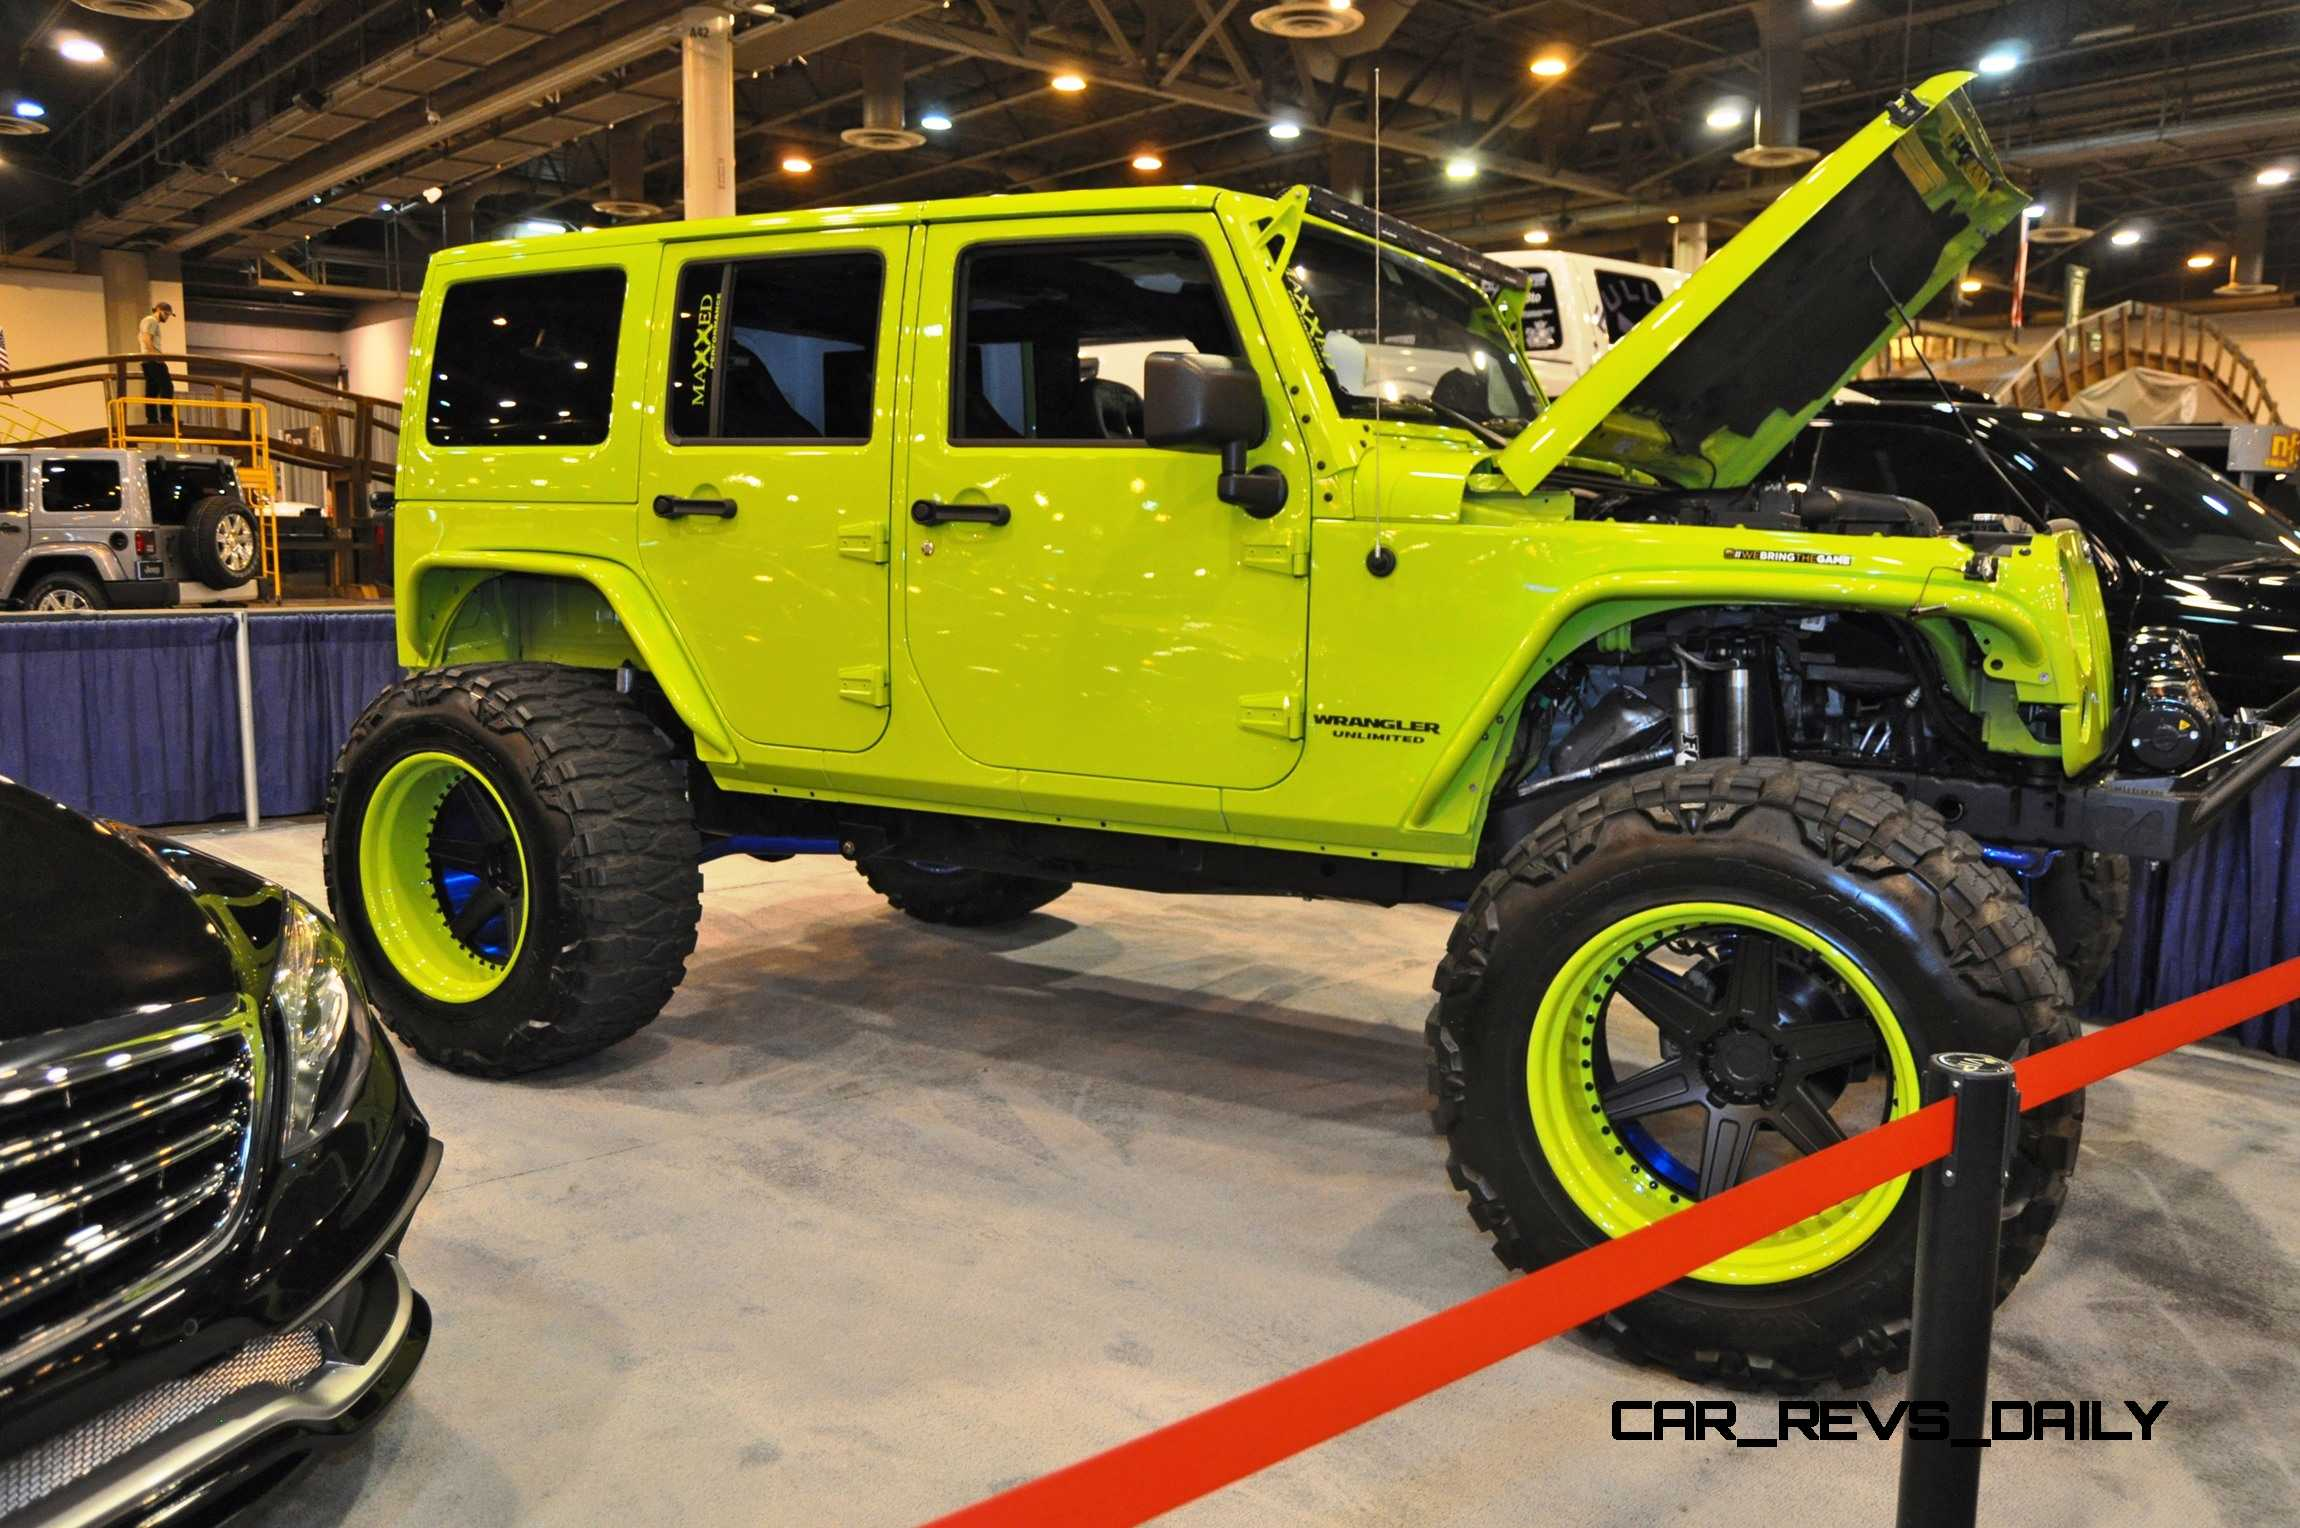 Houston Auto Show Customs Top LIFTED TRUCKS - Car and truck shows near me